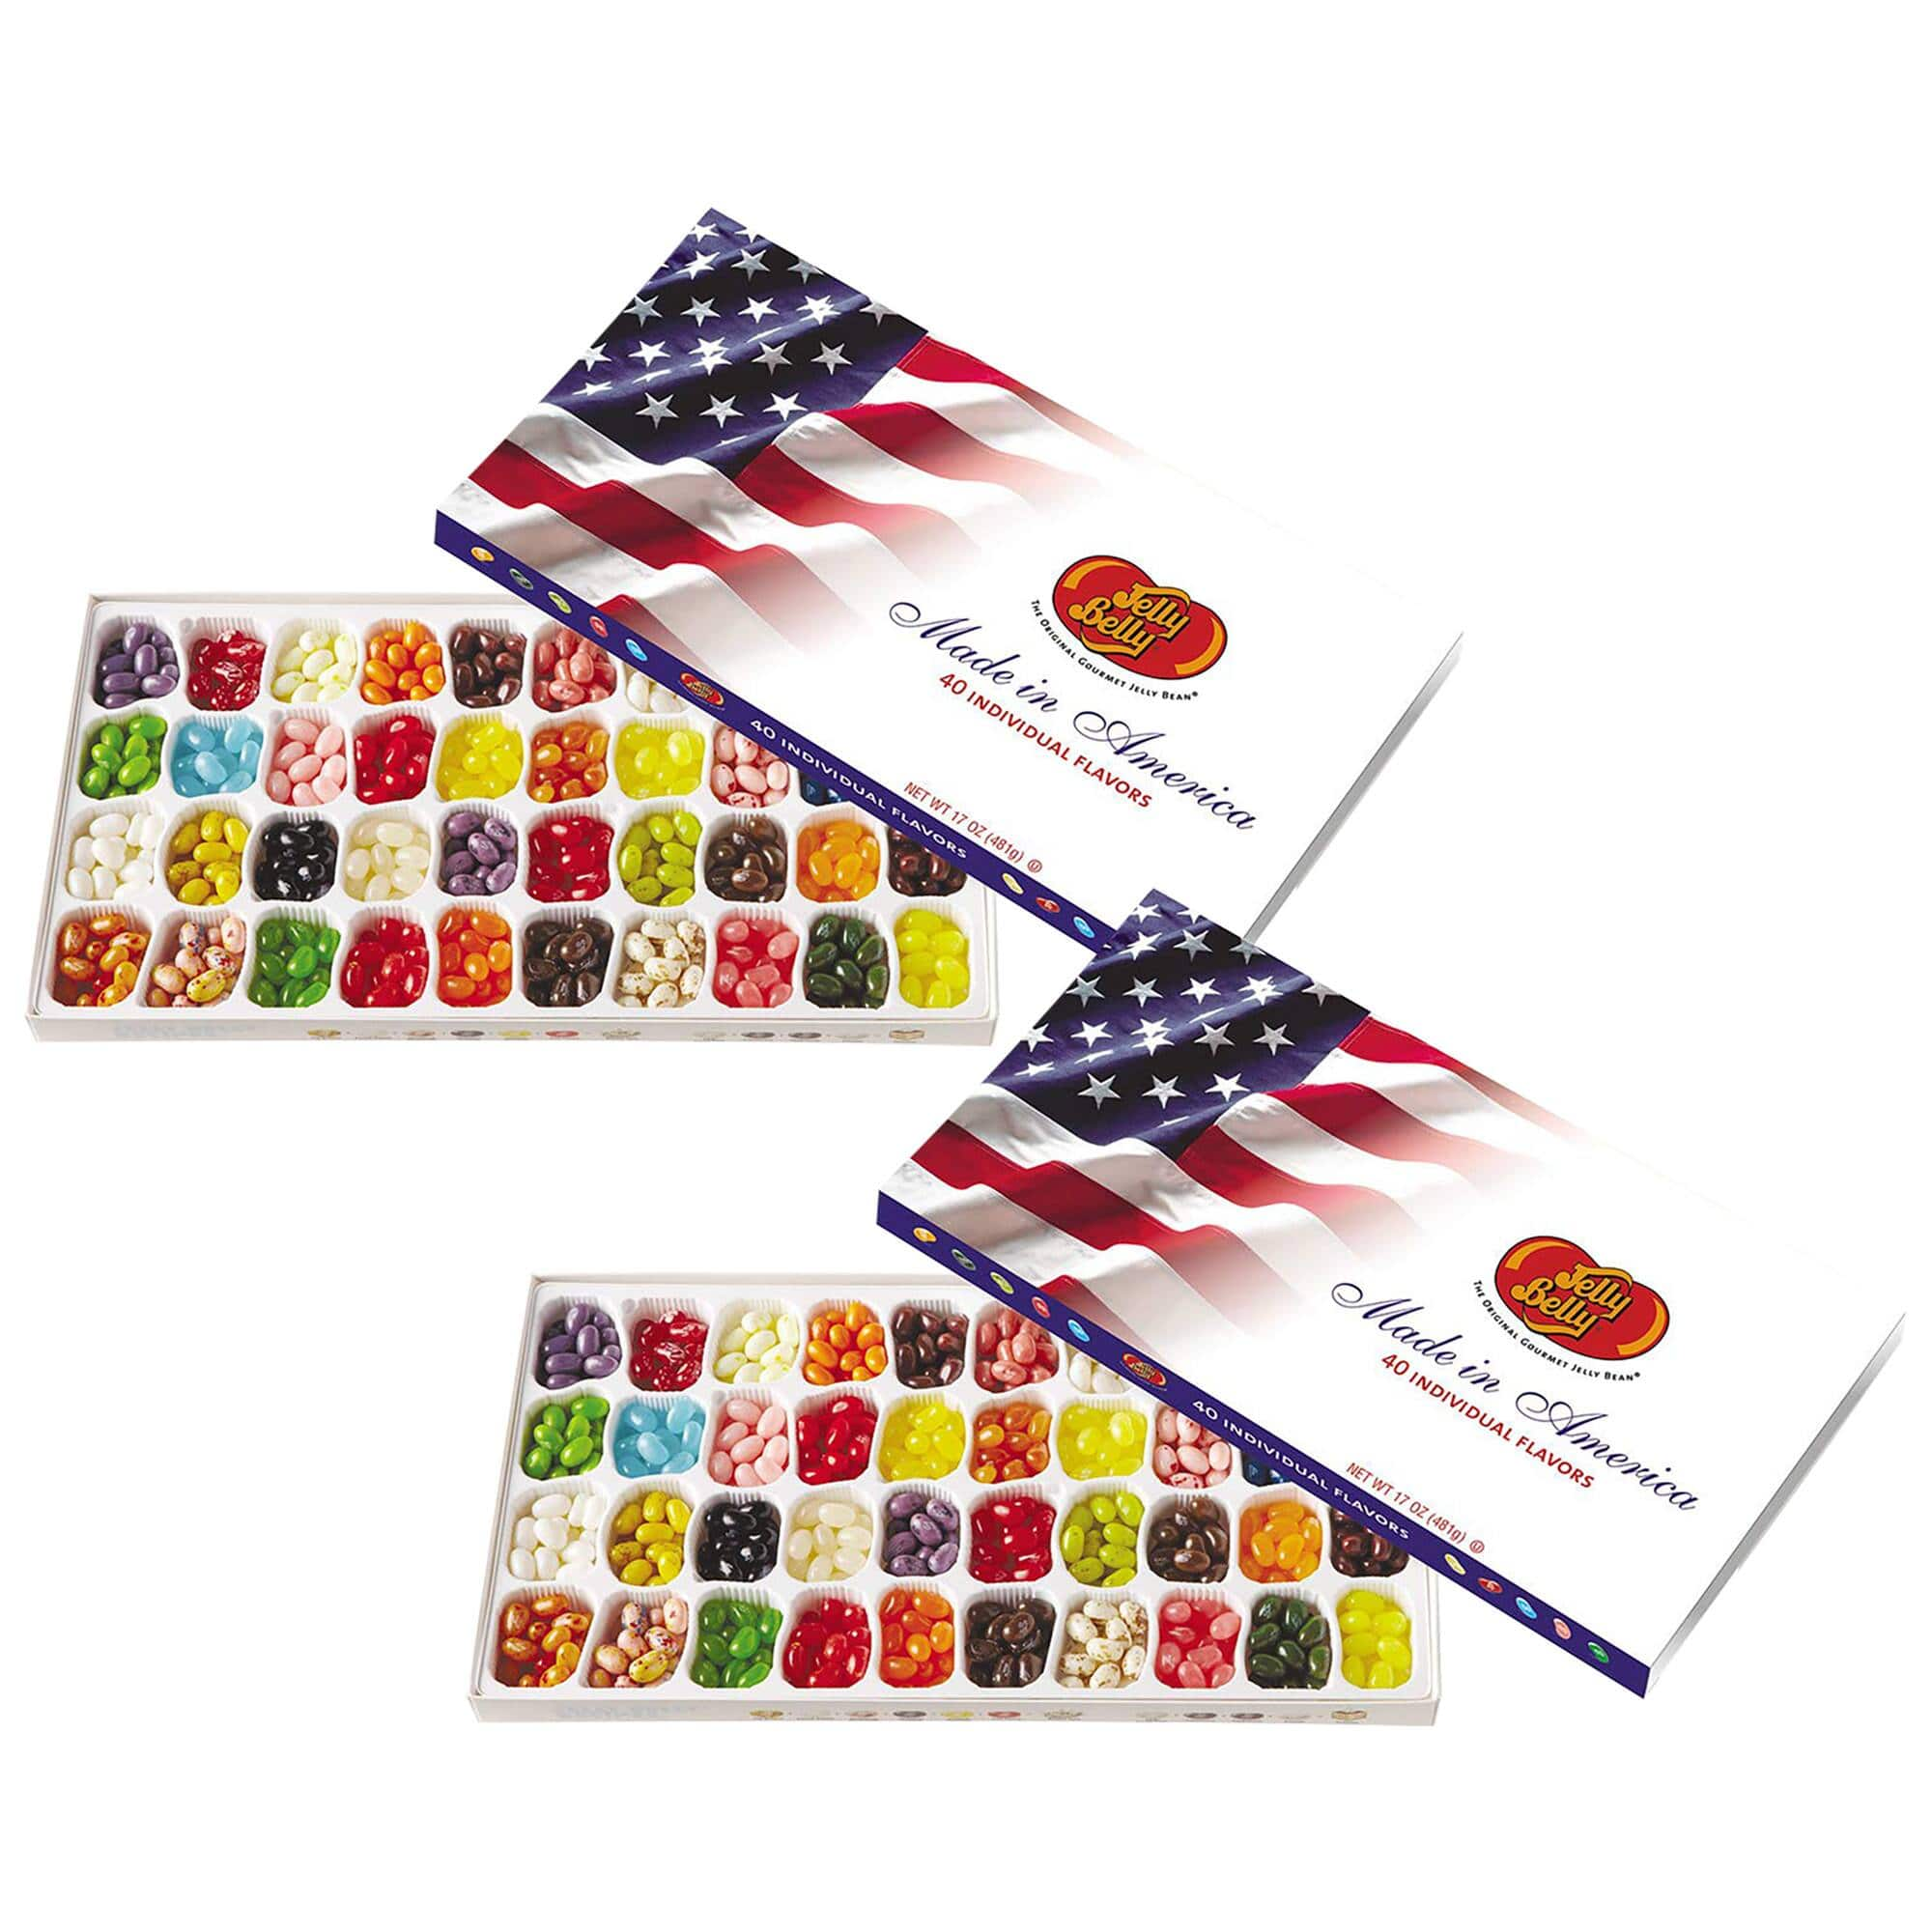 2-Pack: Jelly Belly 40-Flavor Patriotic Gift Box $19 Shipped